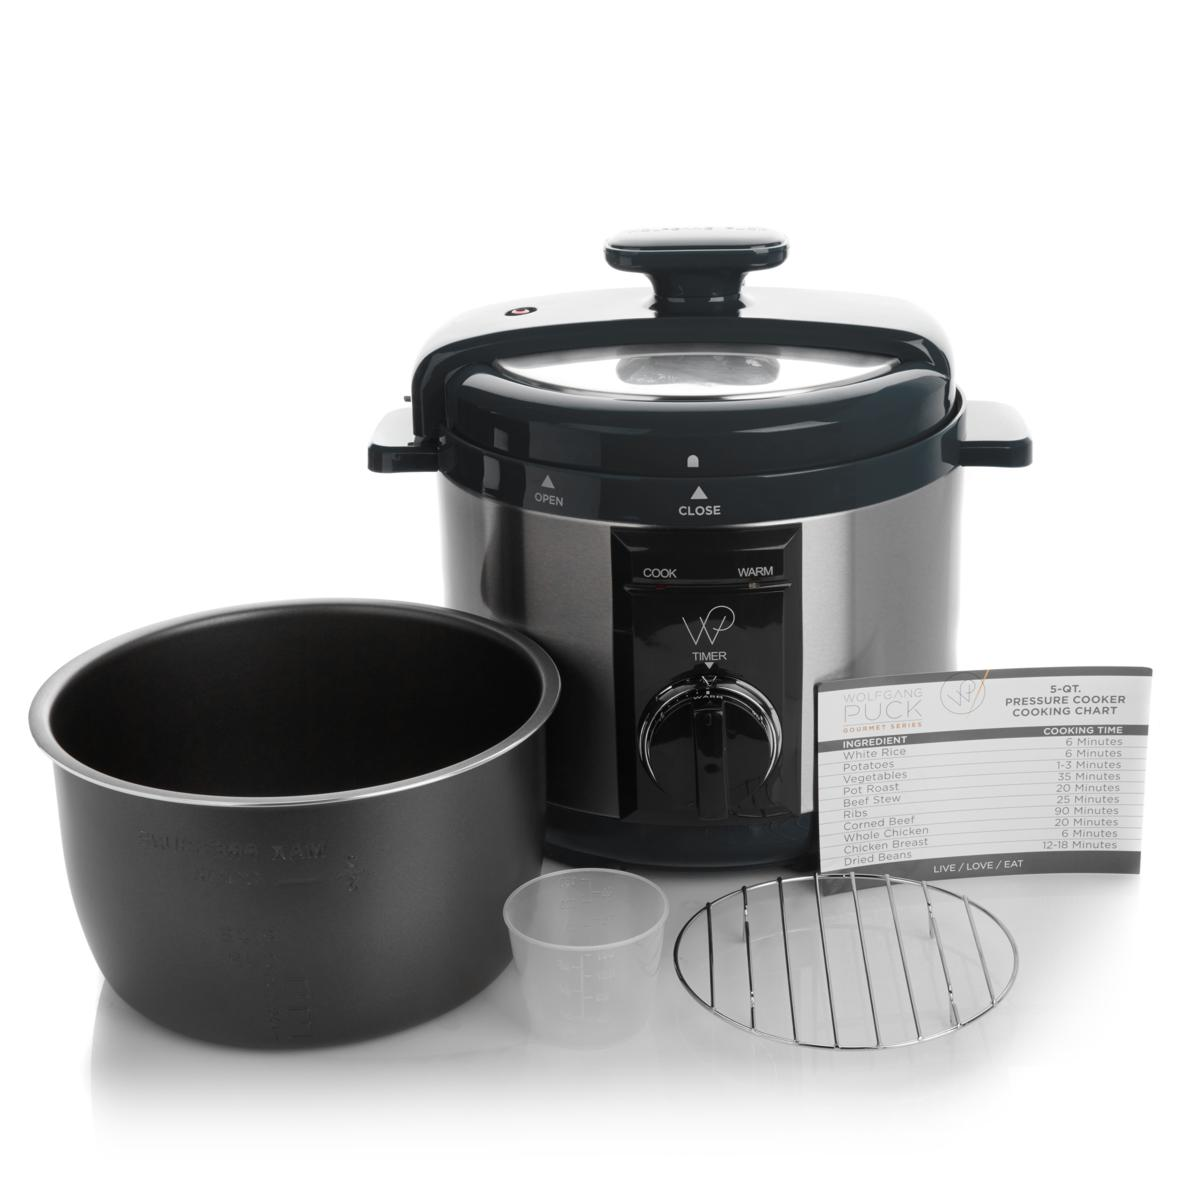 Wolfgang Puck 5 Qt Automatic Rapid Pressure Cooker with 44 Recipes - Tanga